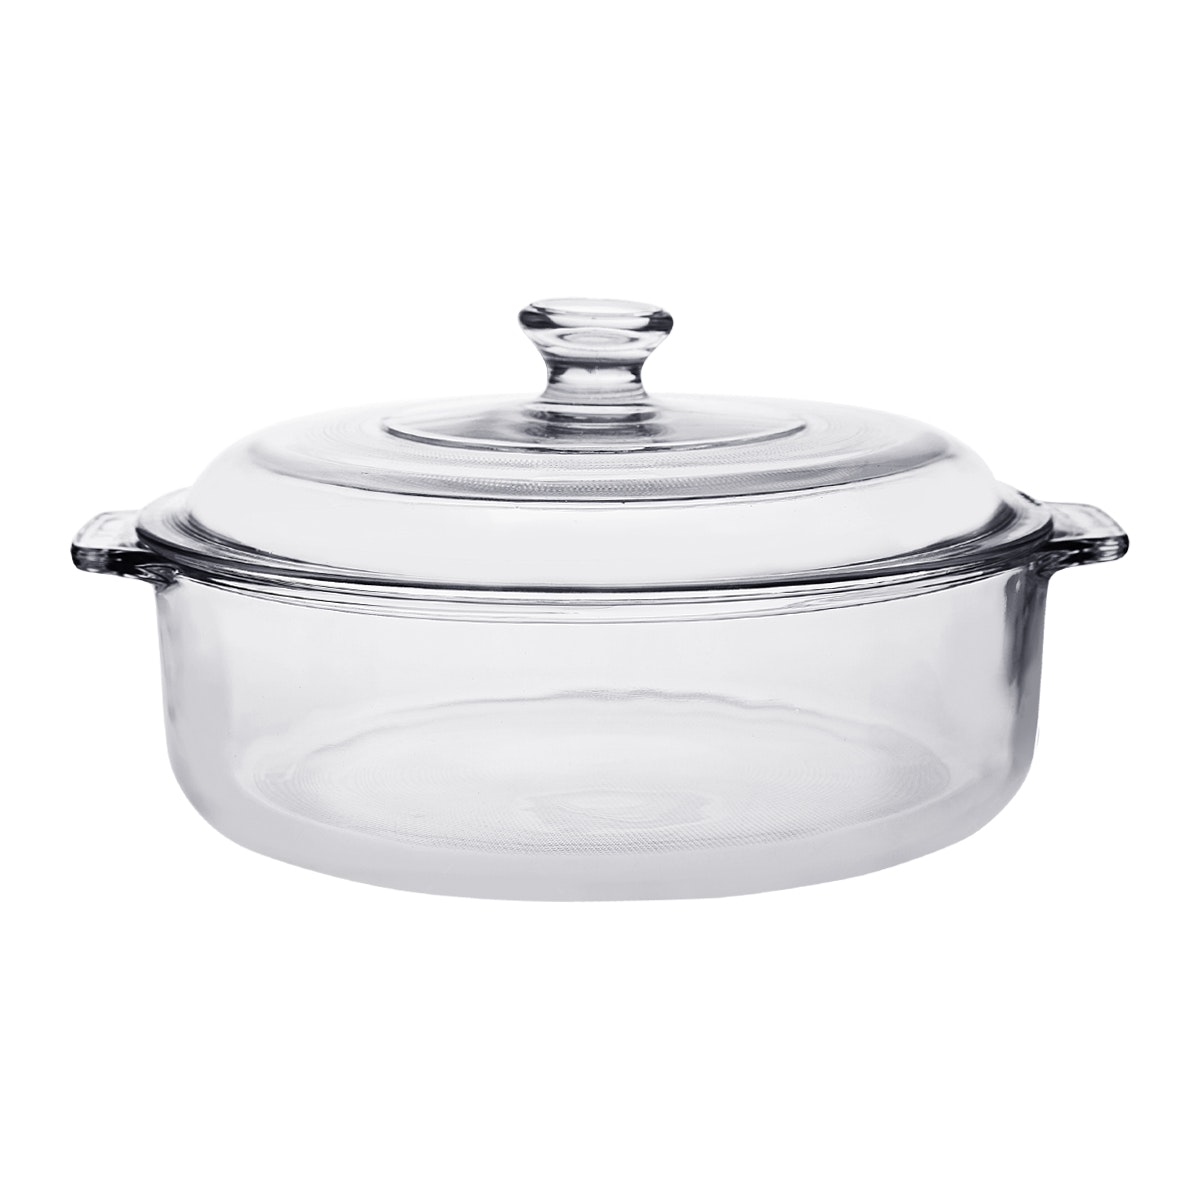 Pyr-O-Rey Large Multi Purpose Casserole W/ Large Glass Lid 3Lt